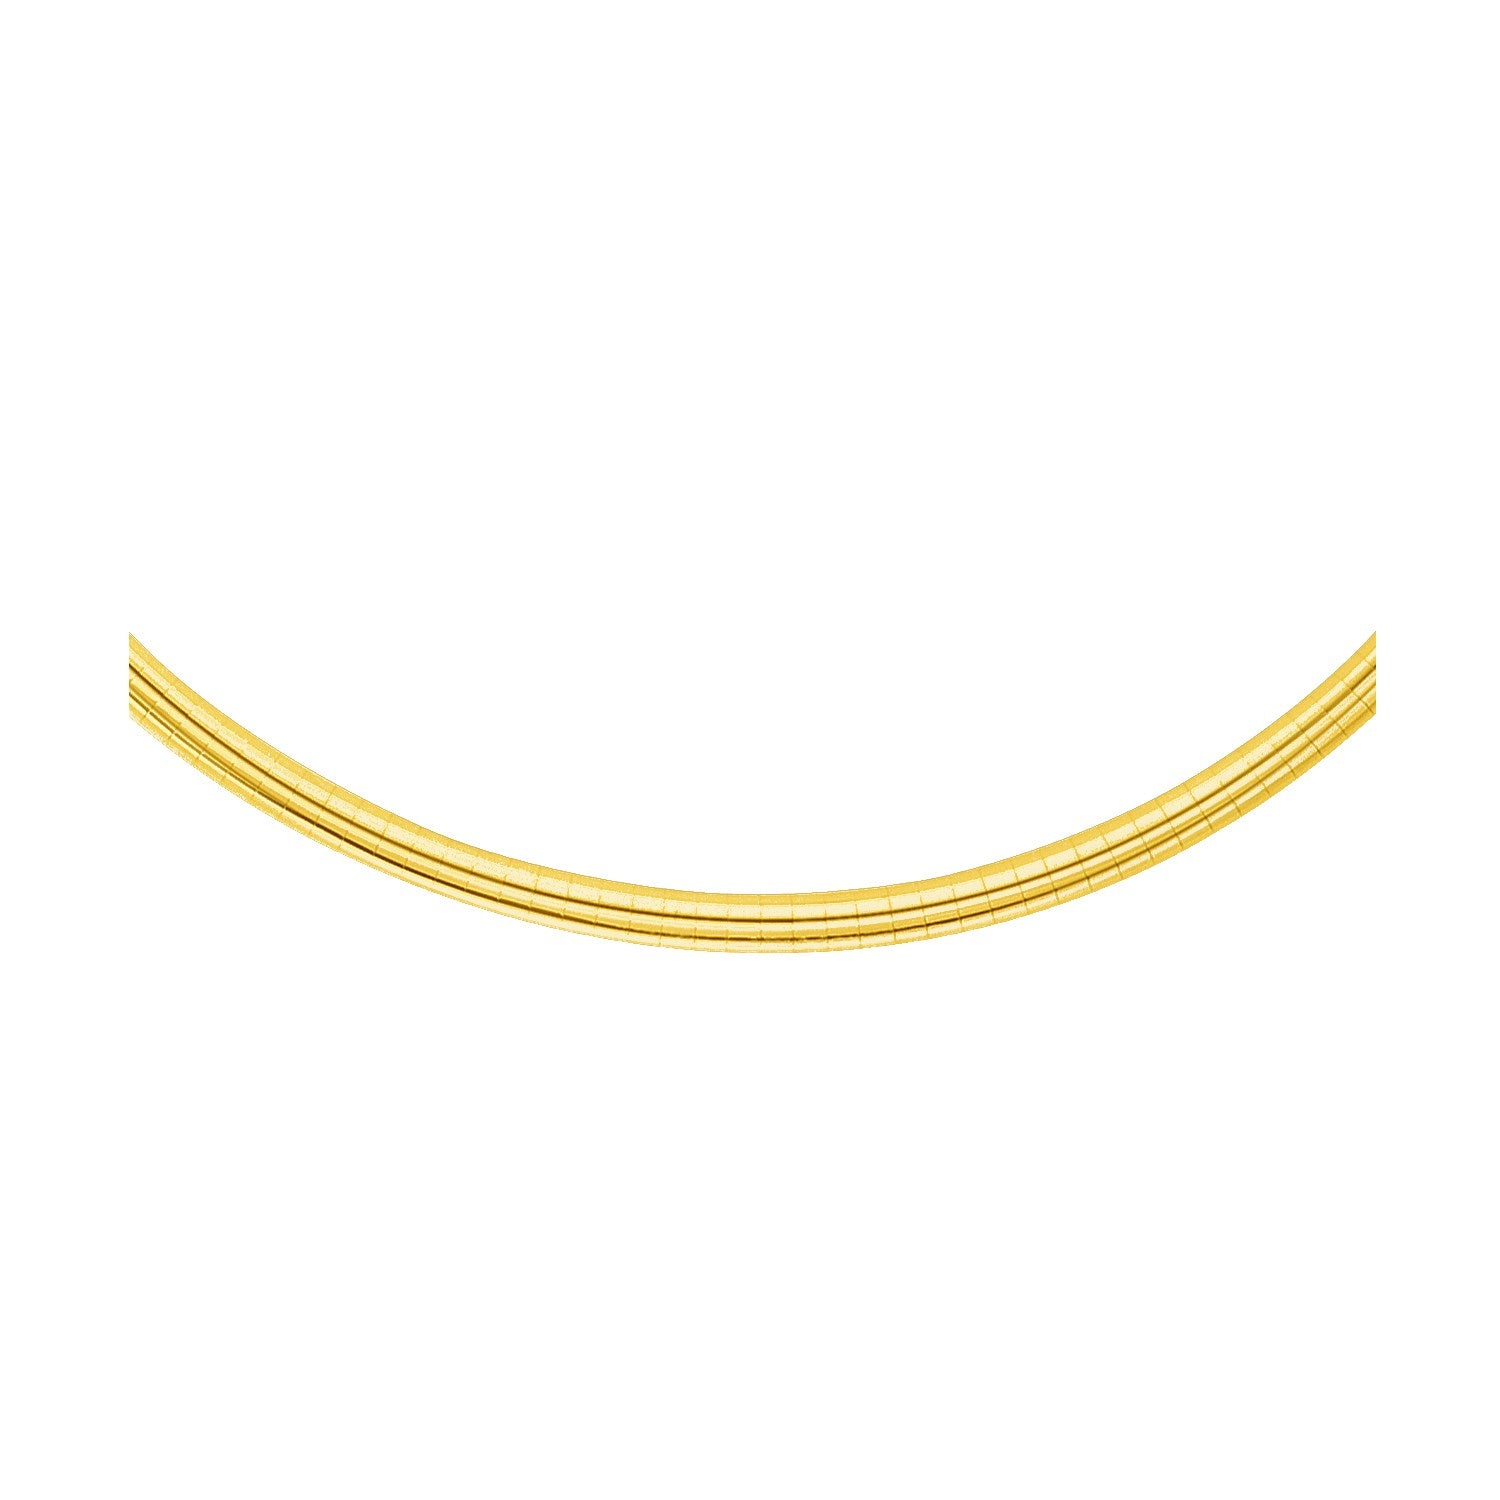 4.0 mm 14K Yellow Gold Classic Omega Bracelet